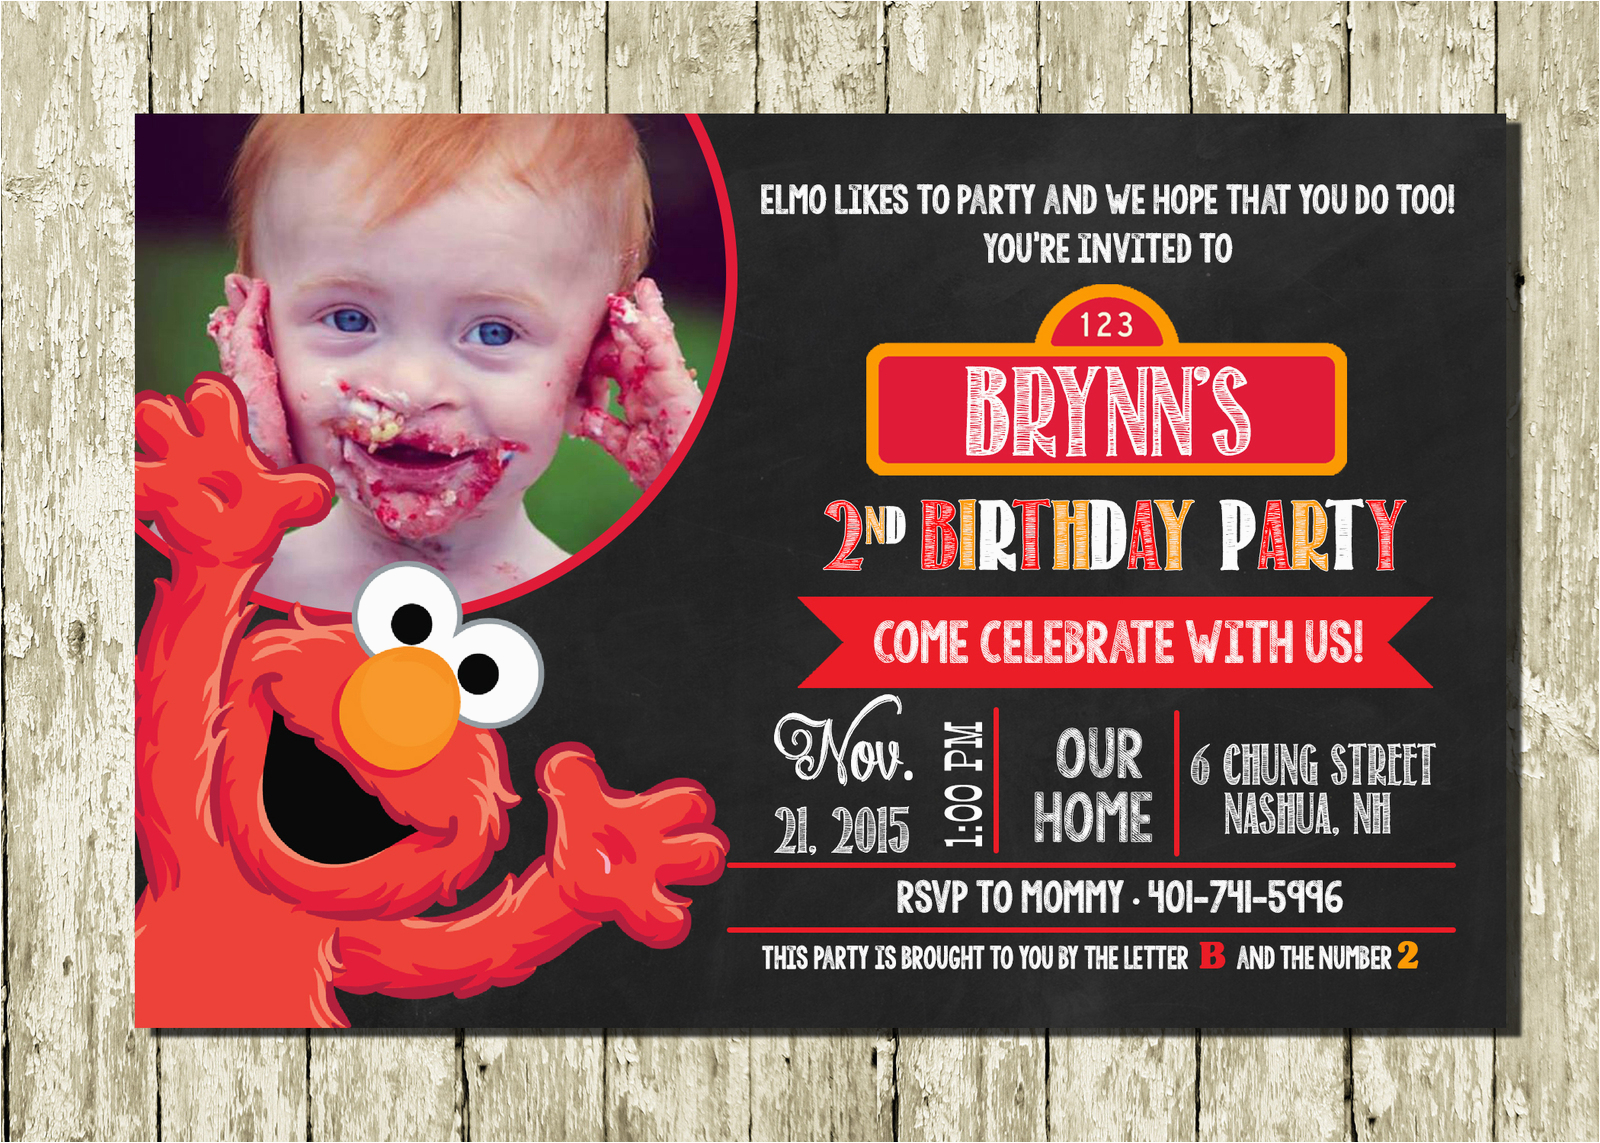 Customized Birthday Invitations Online Elmo Personalized Digital Printable Photo Chalkboard